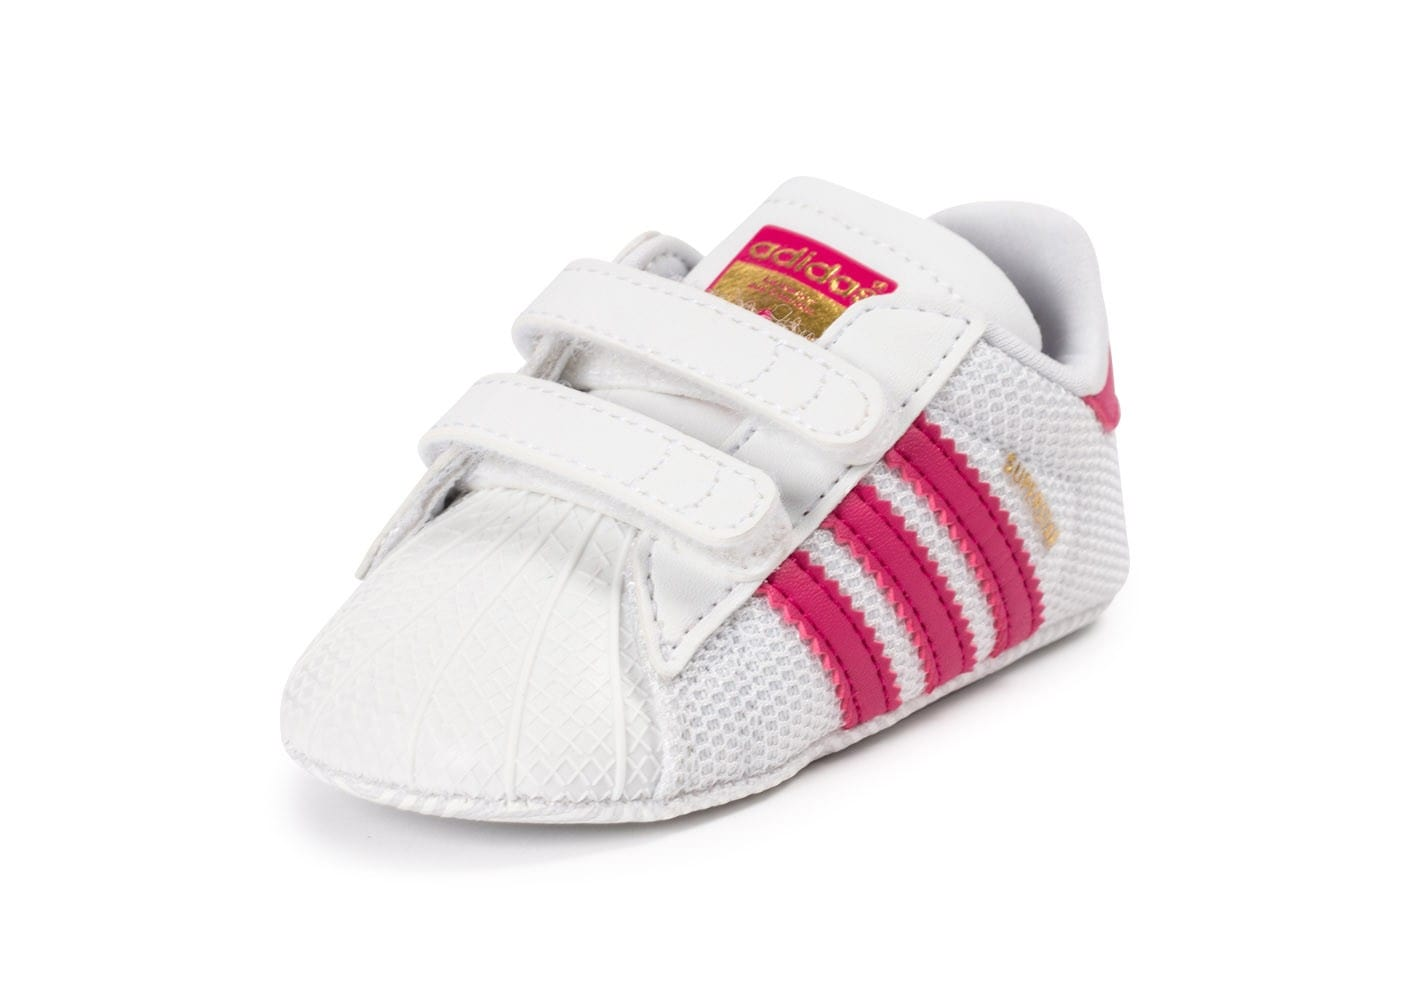 adidas superstar crib b b blanche et rose chaussures adidas chausport. Black Bedroom Furniture Sets. Home Design Ideas